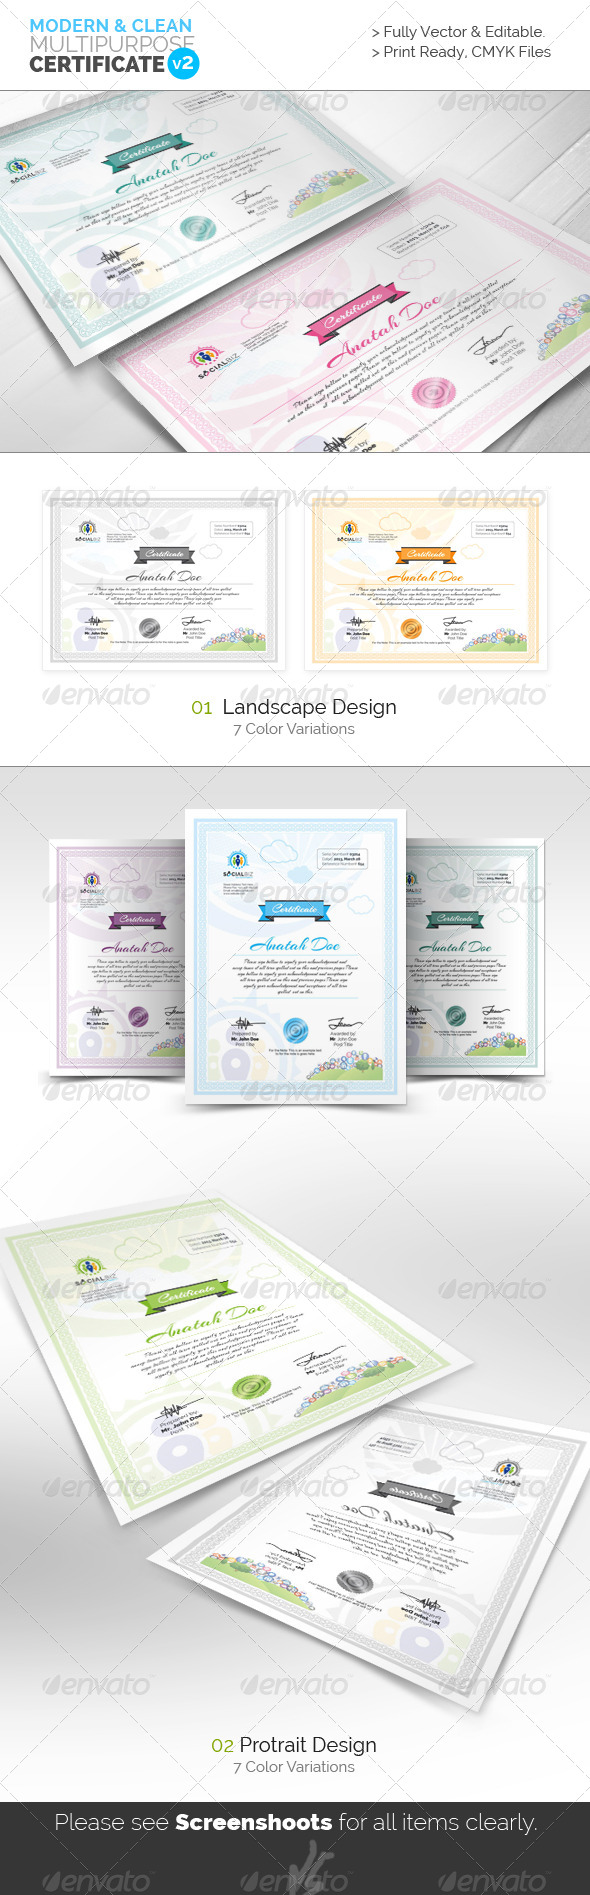 GraphicRiver Clean Multipurpose Certificates v3 5748518